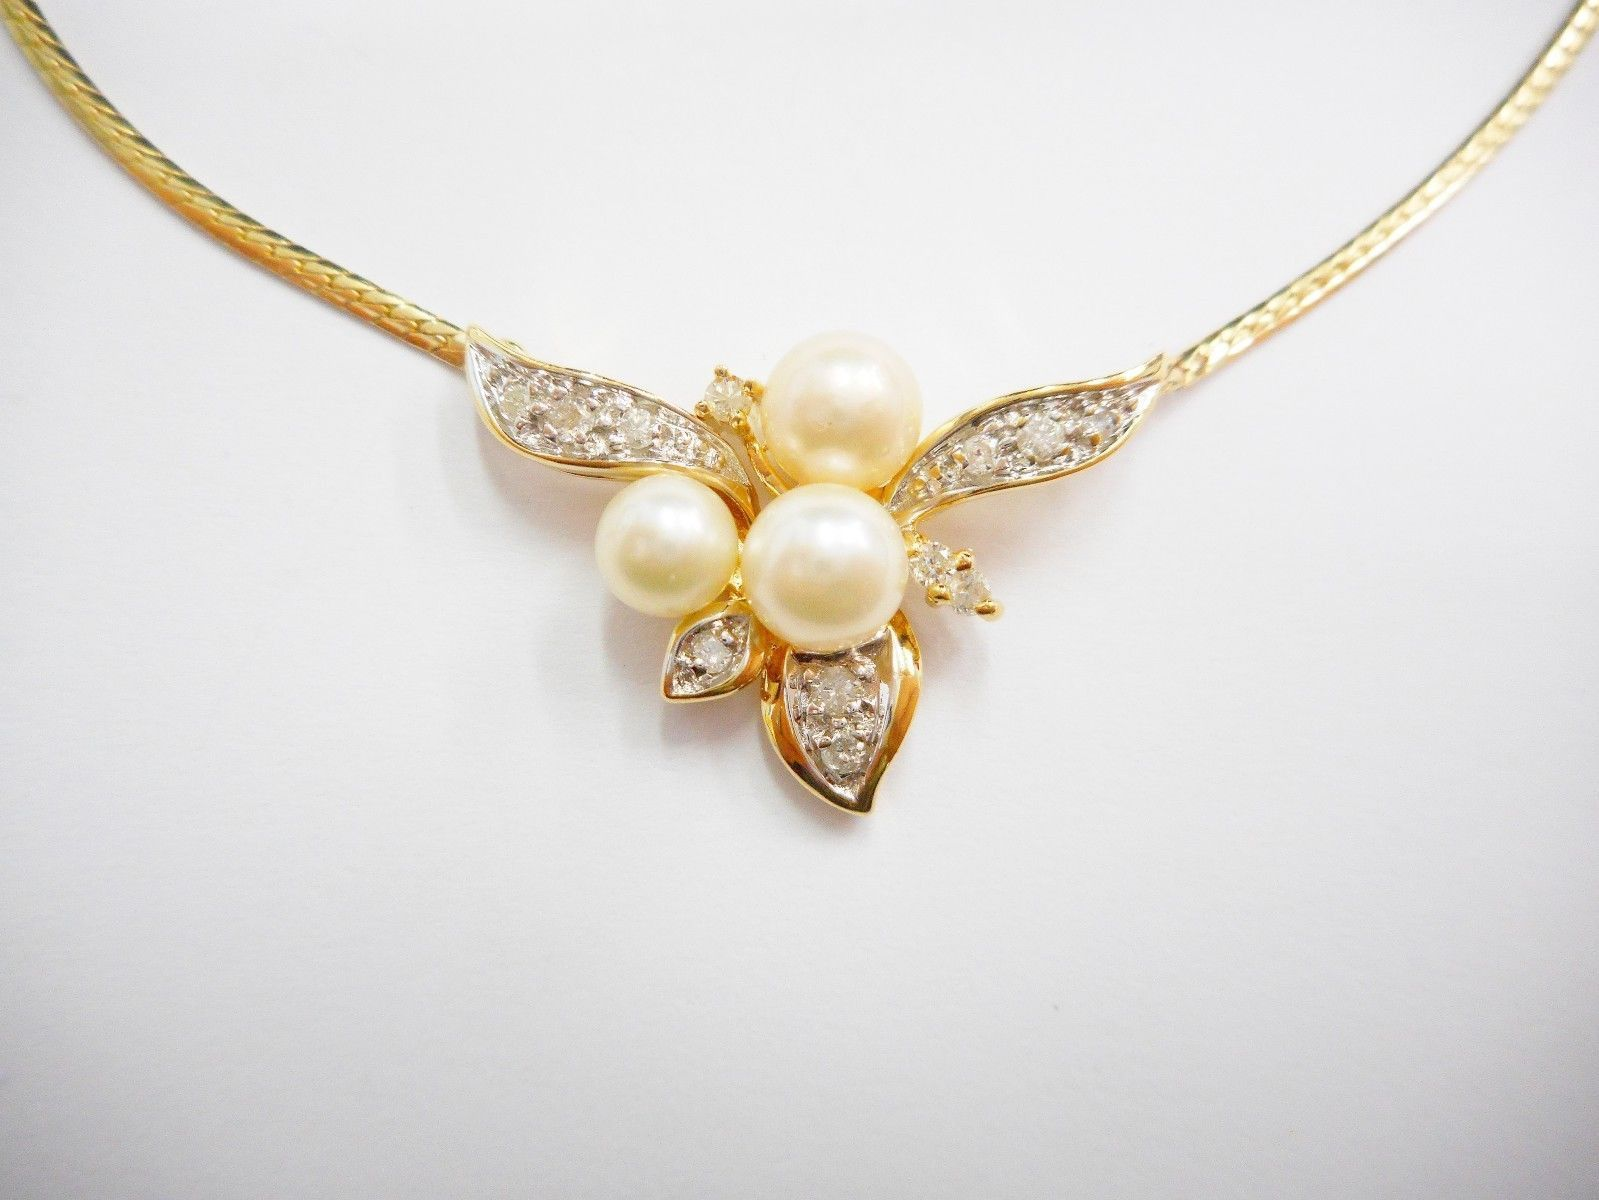 "Genuine 14k Yellow Gold Pearl & Diamond Pendant Necklace 16"" #2493"